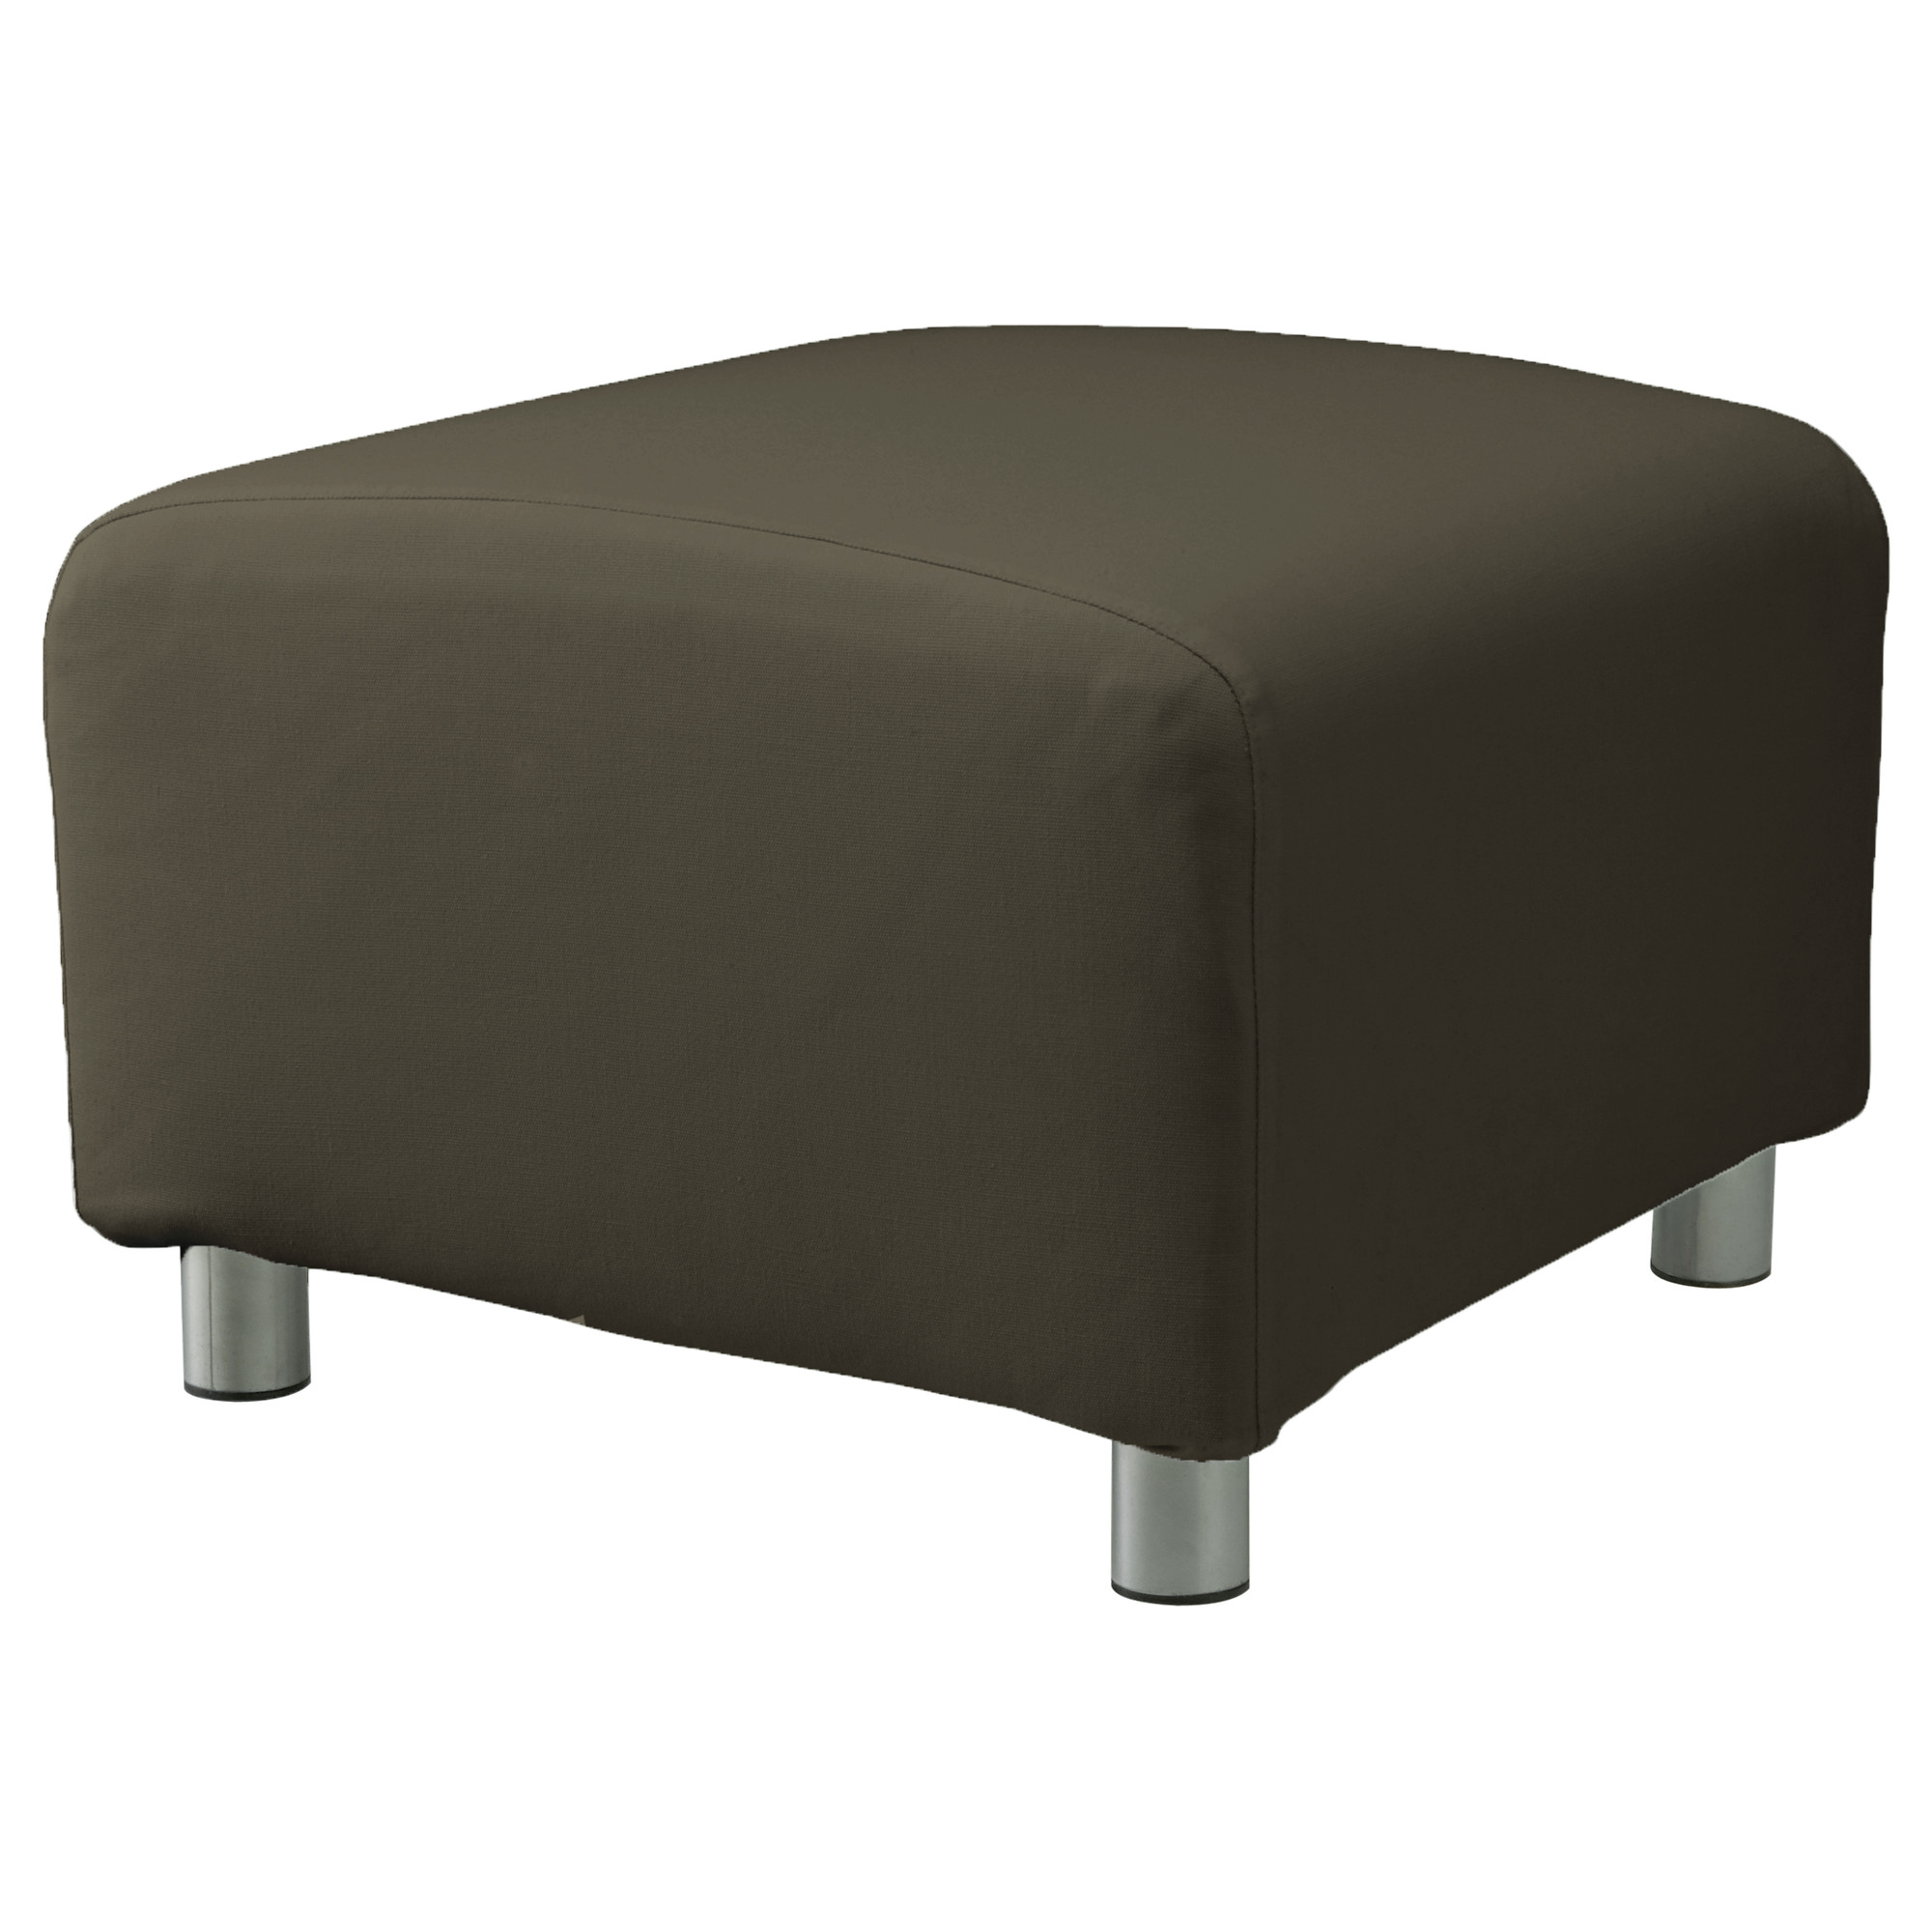 Custom Slip Cover For Ikea Klippan Footstool 100